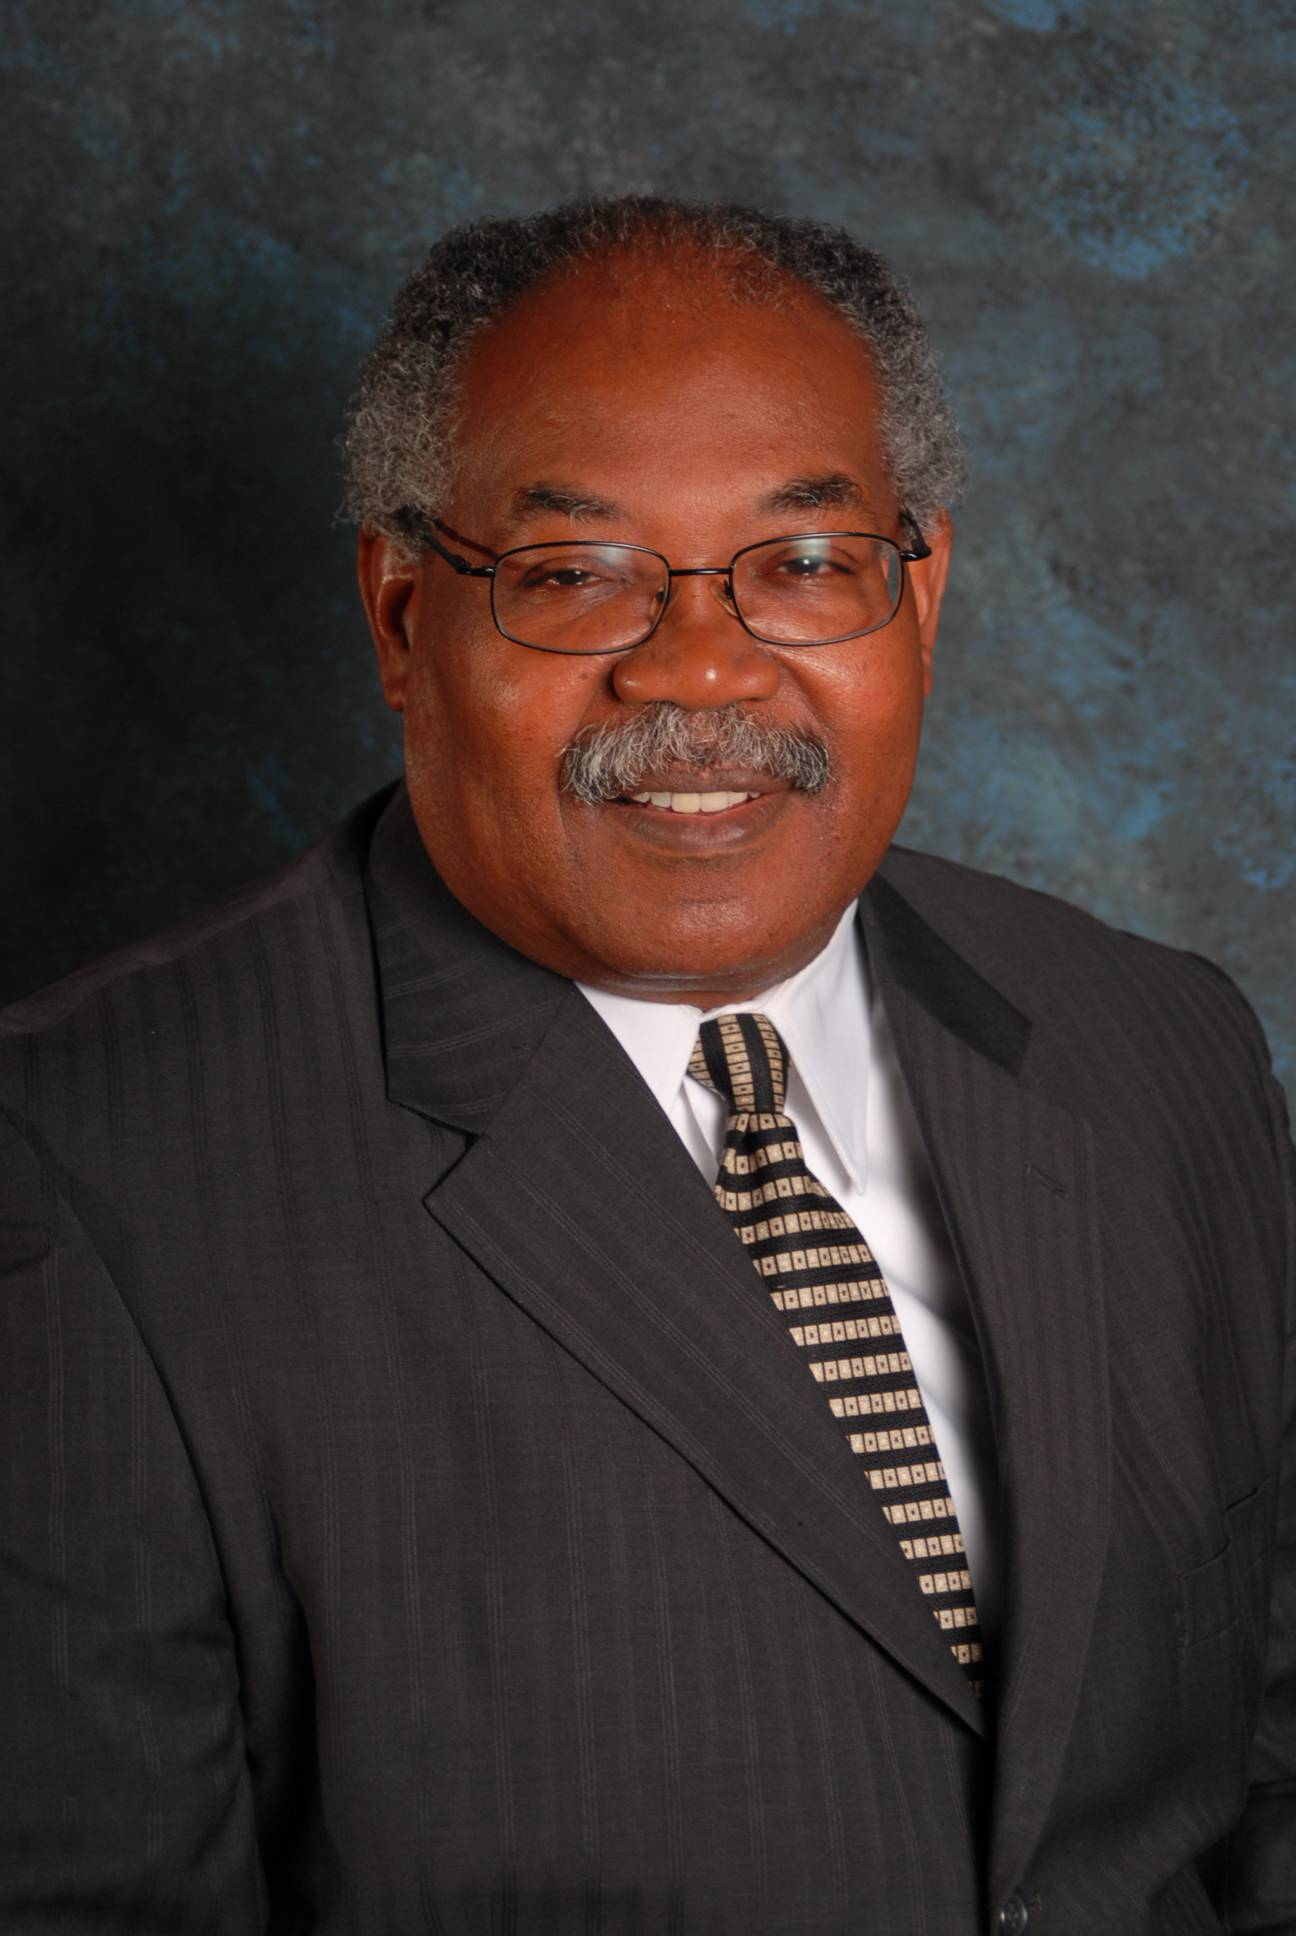 Willie L. Rhodes, running for Keeneyville Elementary D20